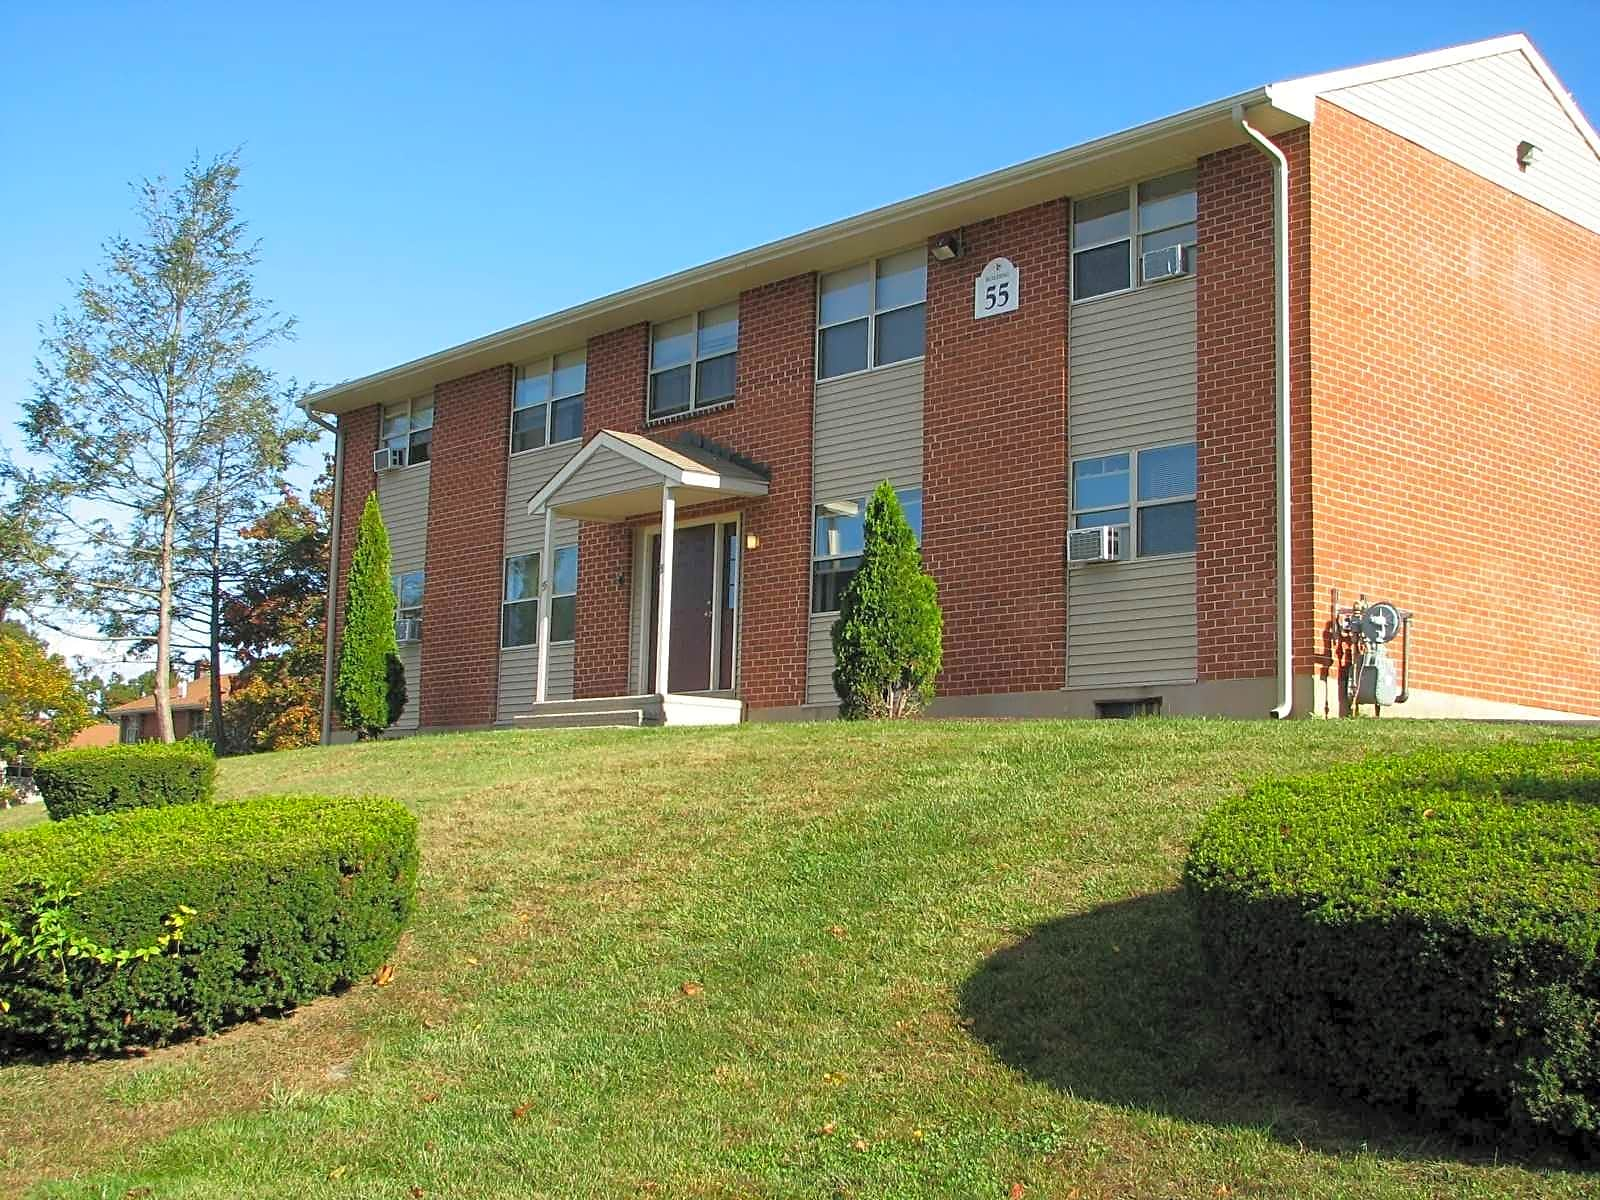 Photo: Waterbury Apartment for Rent - $760.00 / month; 1 Bd & 1 Ba